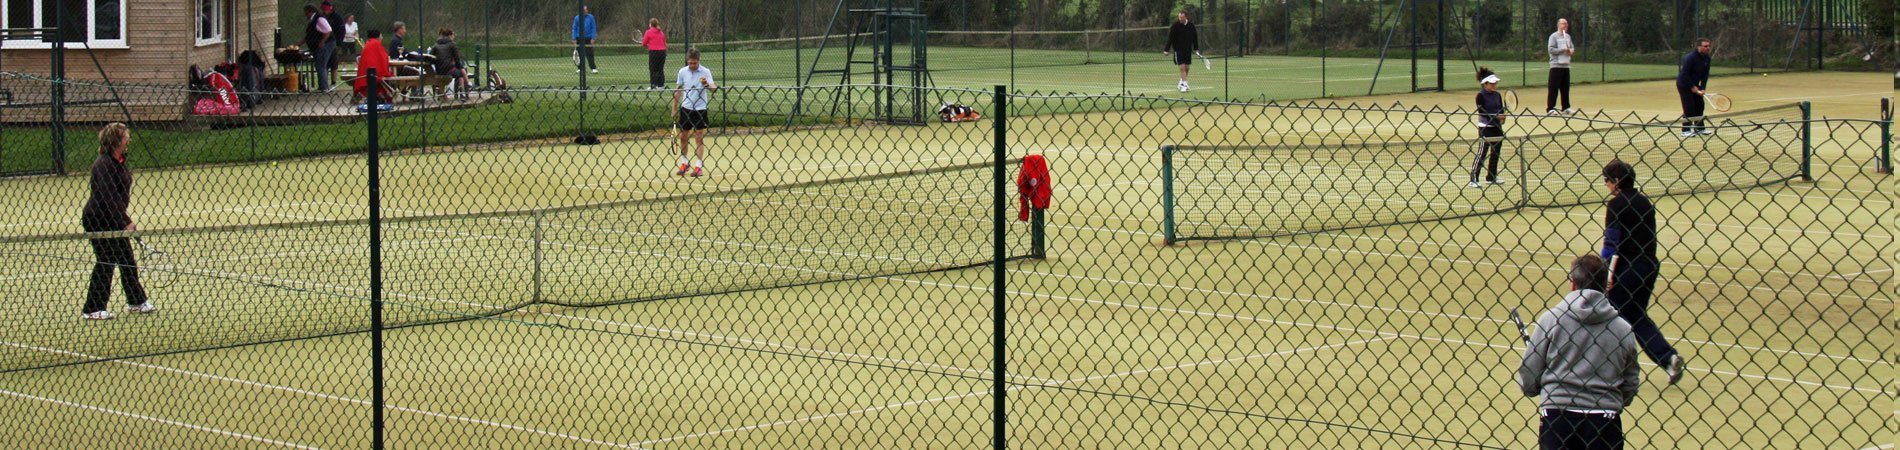 Tennis matches in progress at Pocklington Tennis Club